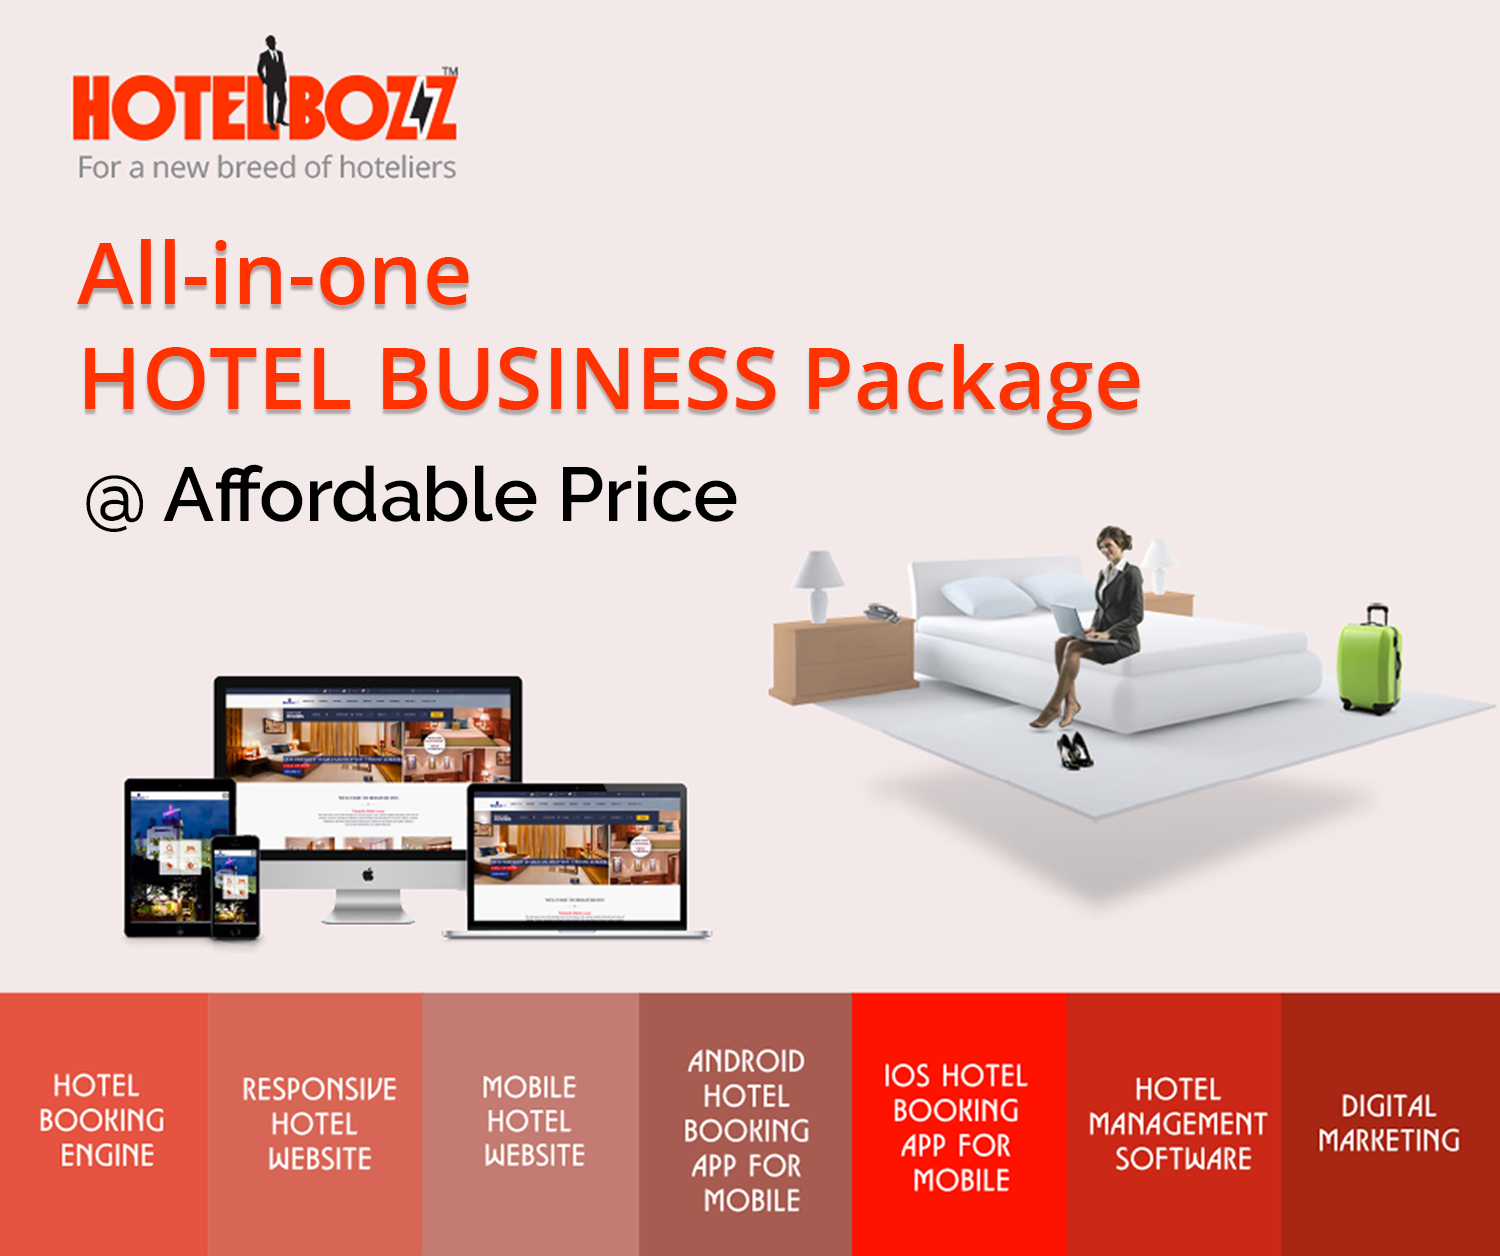 hotel bozz hotel business package kerala